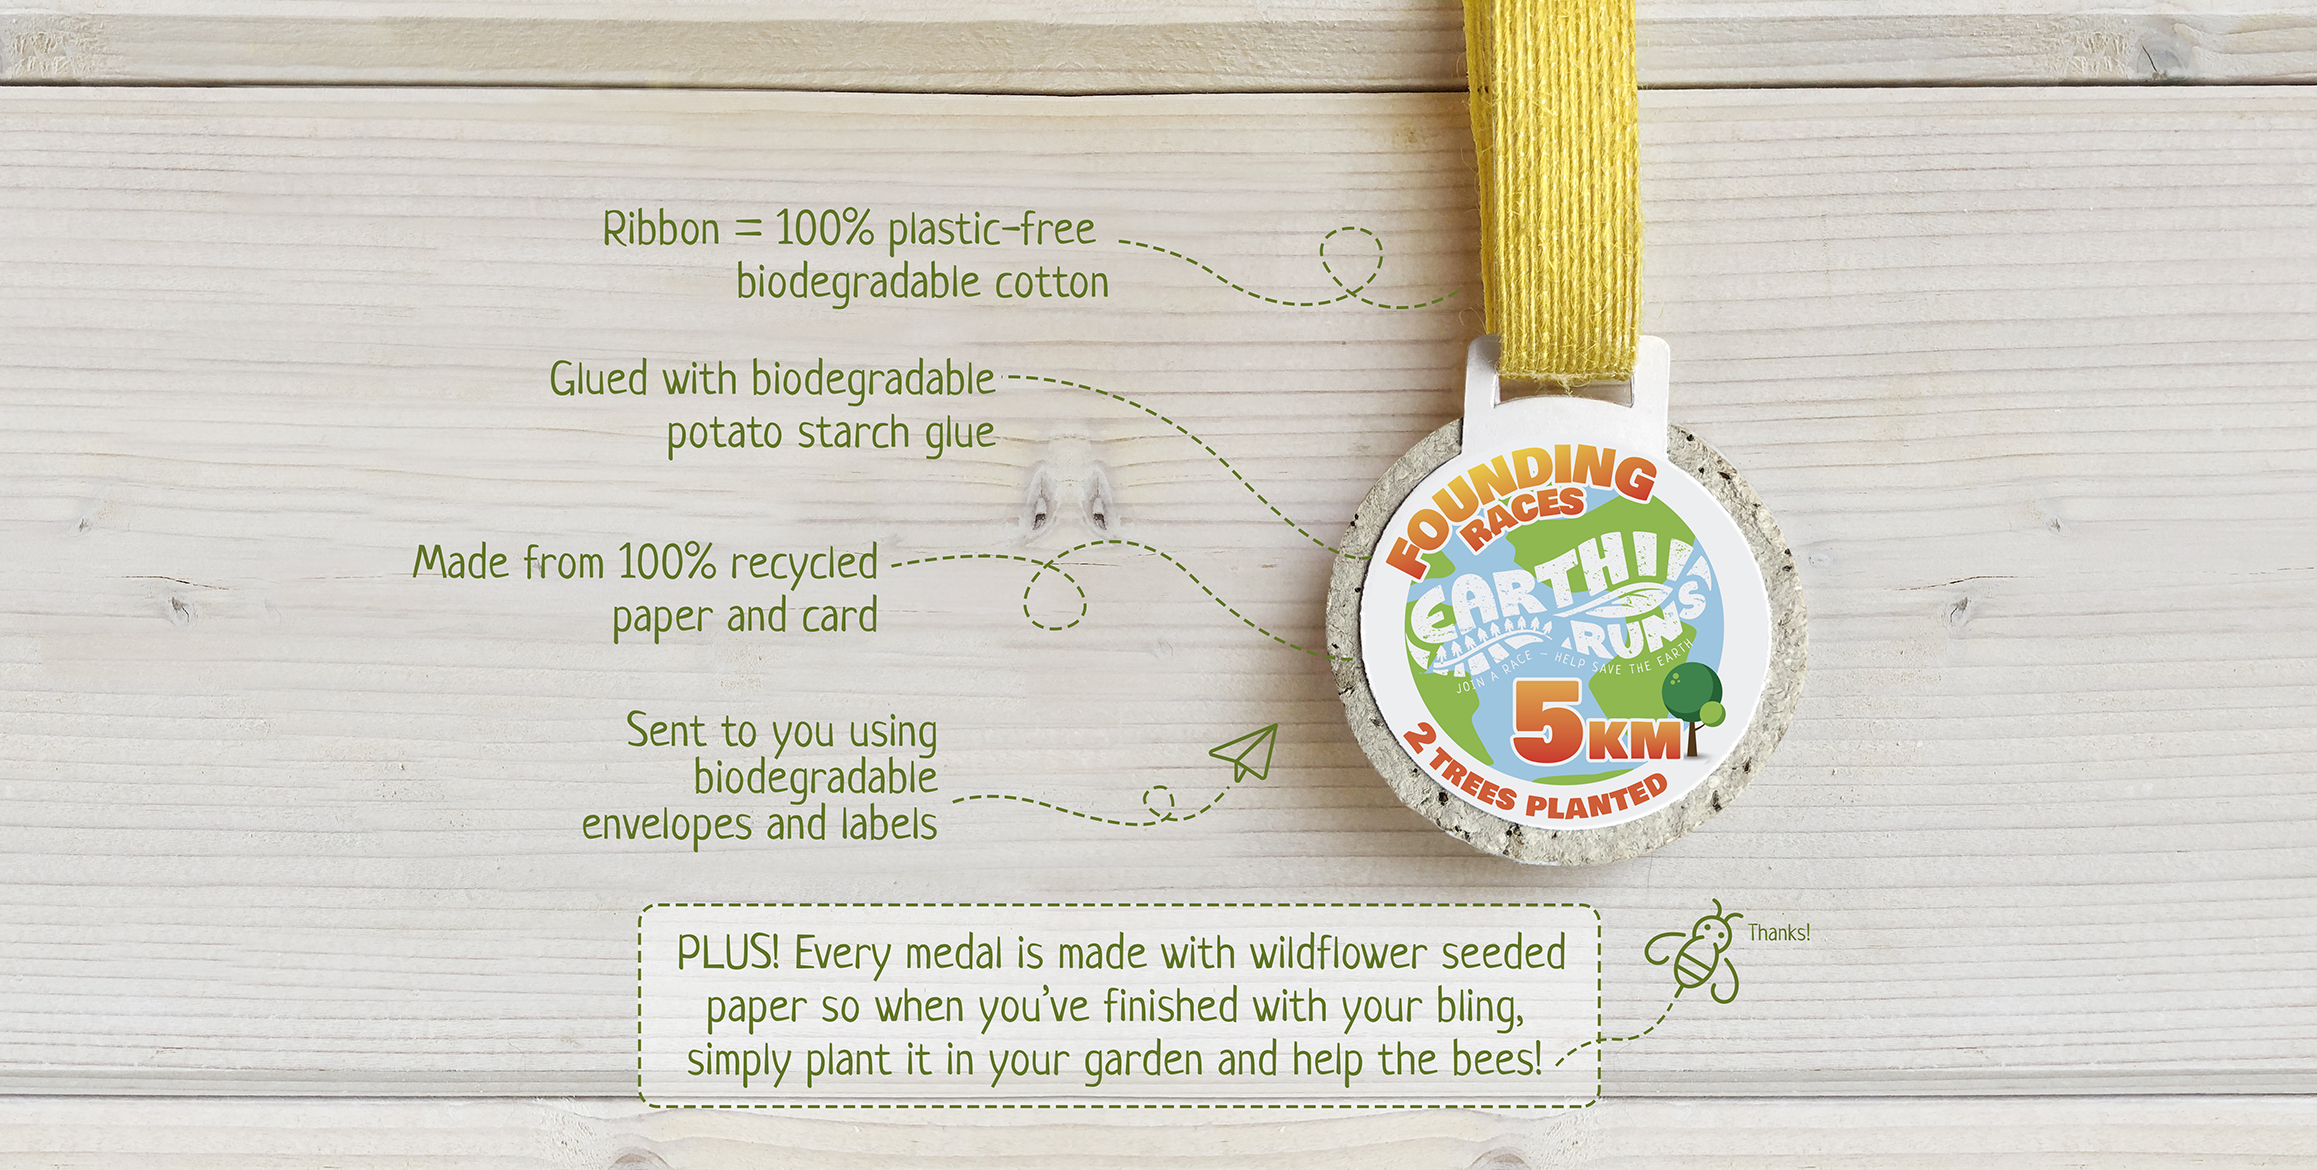 Plastic Free seeded medals